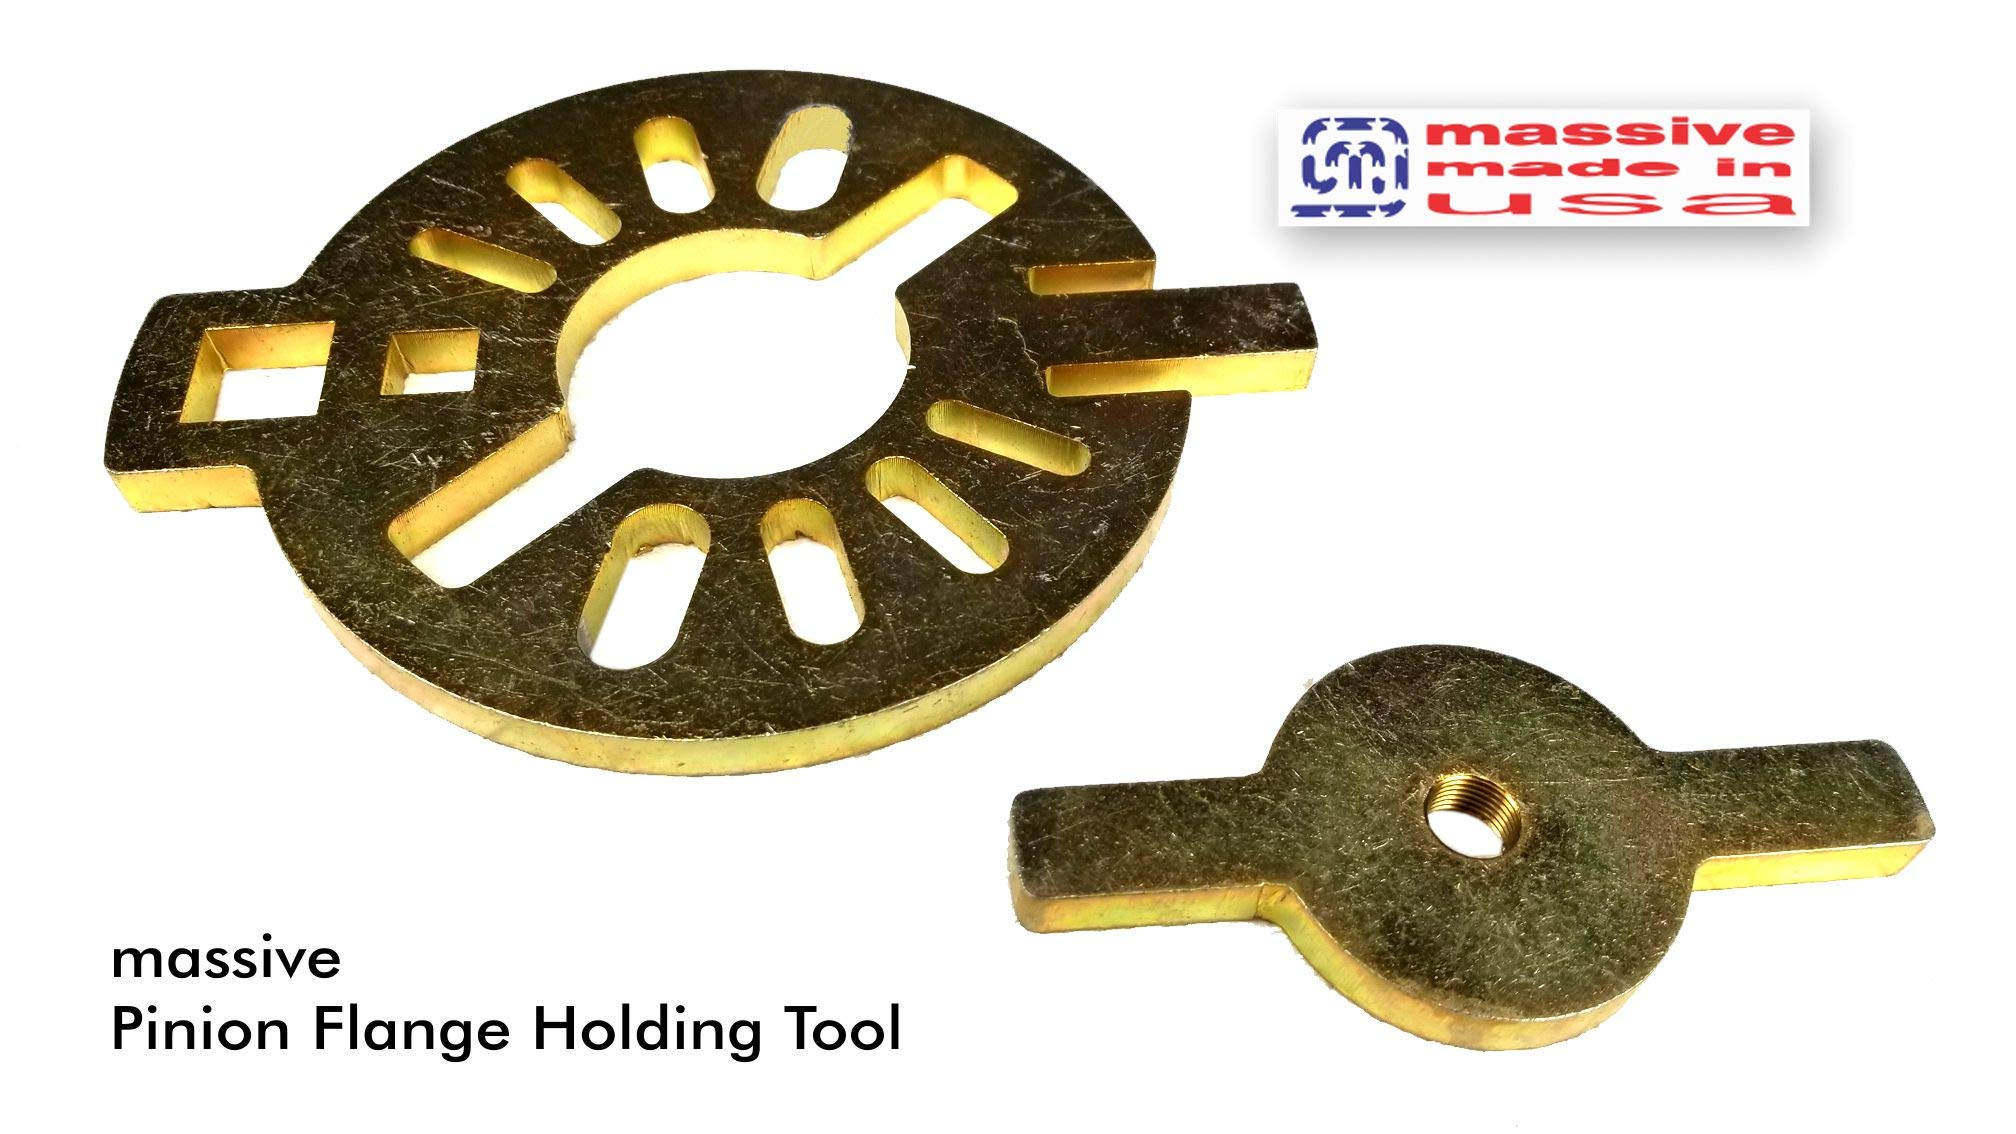 Massive PRO KIT Pinion Flange Holding Tool Holder Yoke Wrench Made USA Jeep Ring Rear End Axle Nut Seal 8.8 40 Dana 3/8'' Thick! by Massive Speed System (Image #3)